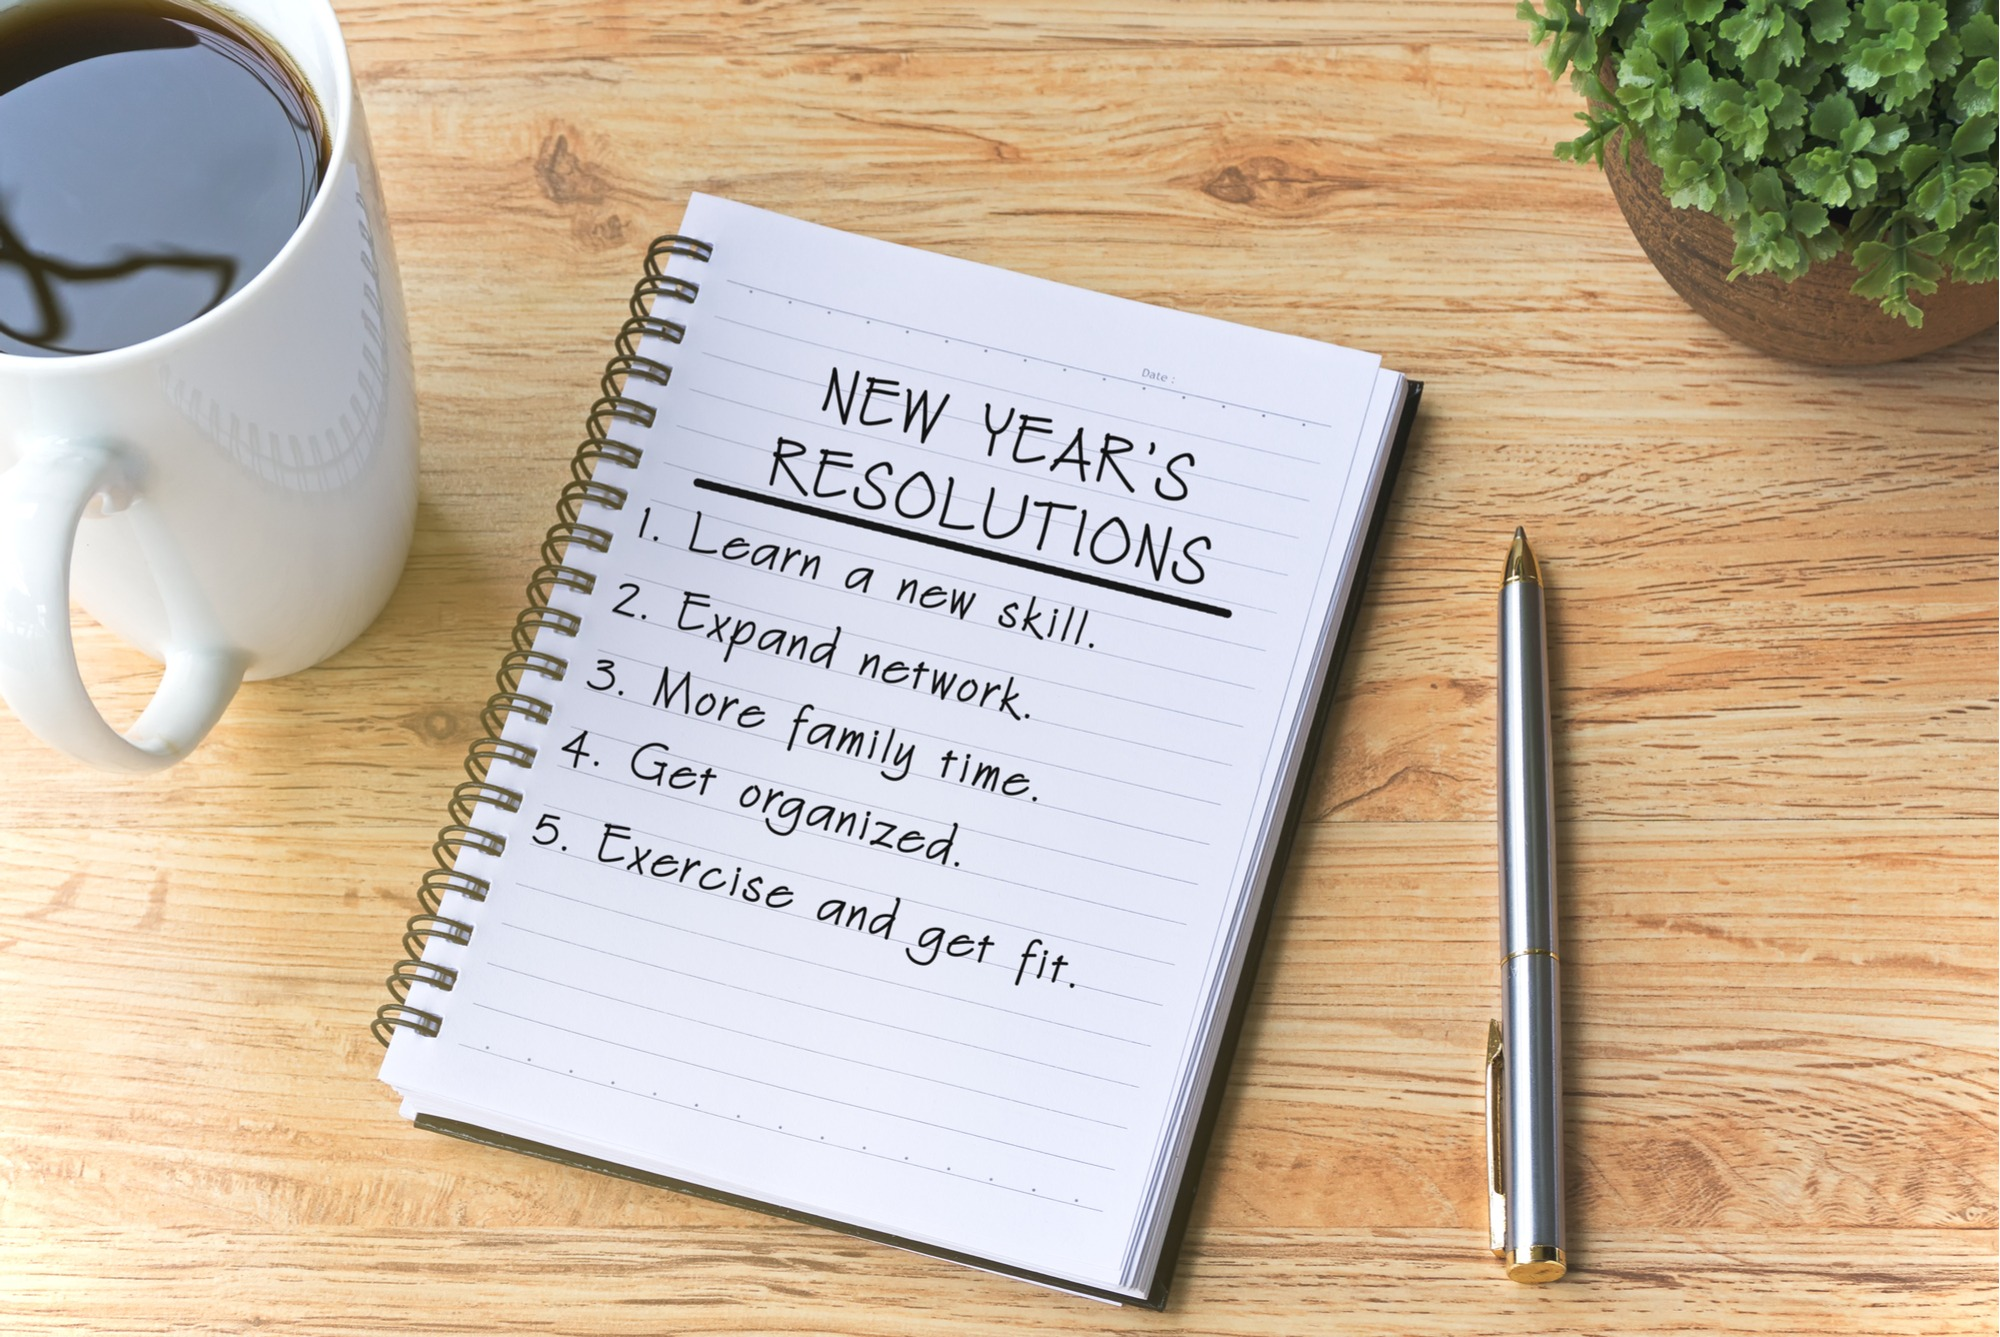 New Years Resolutions for Your Home Garden